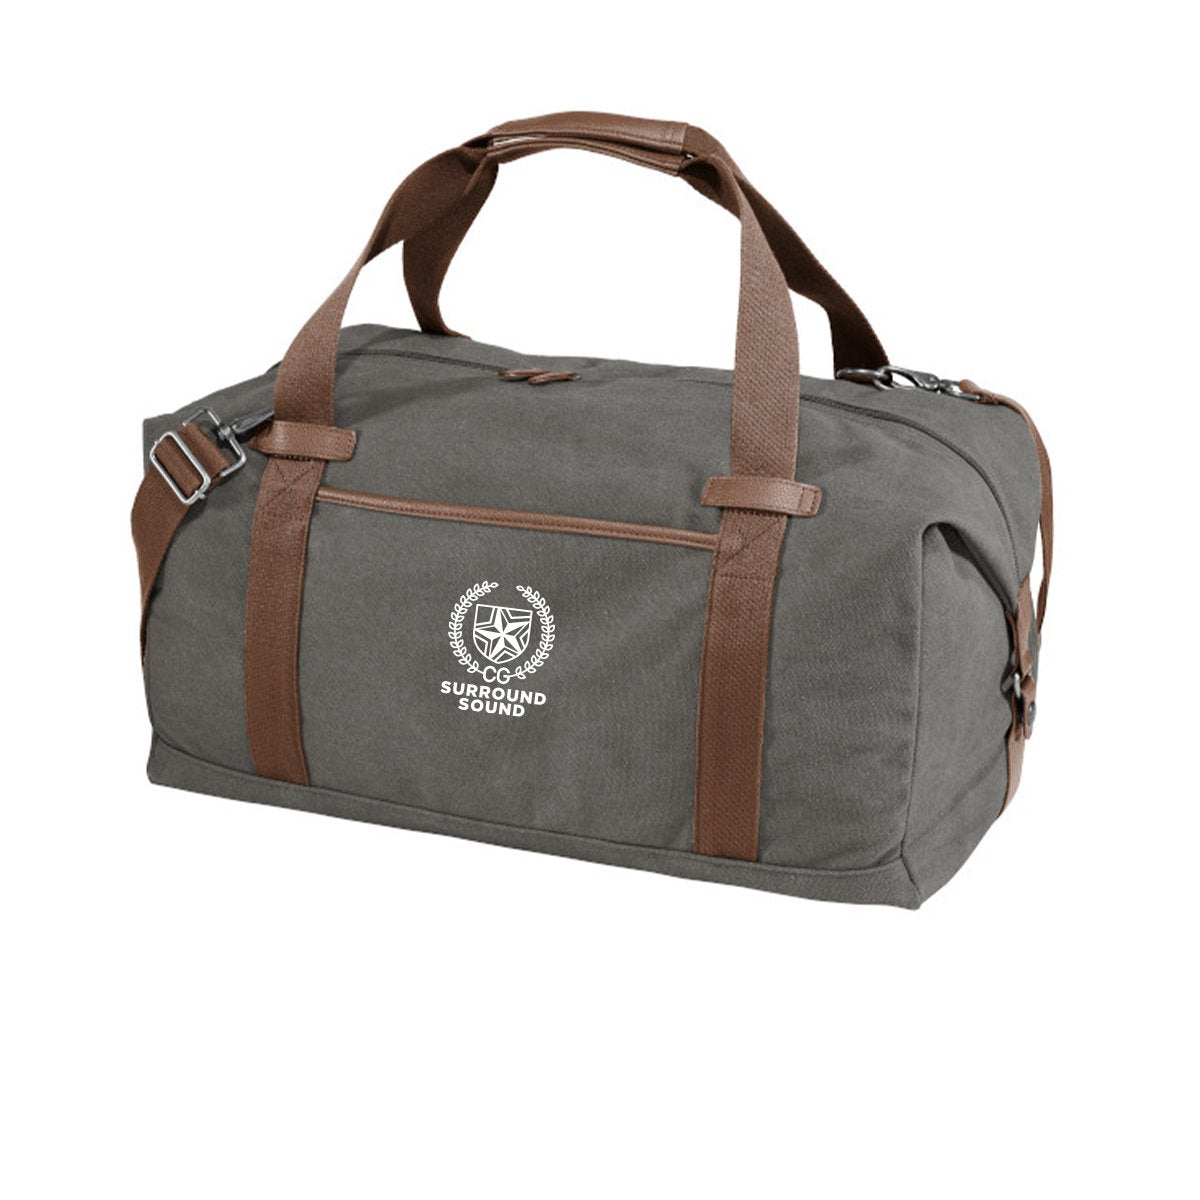 Surround Sound Canvas Duffel